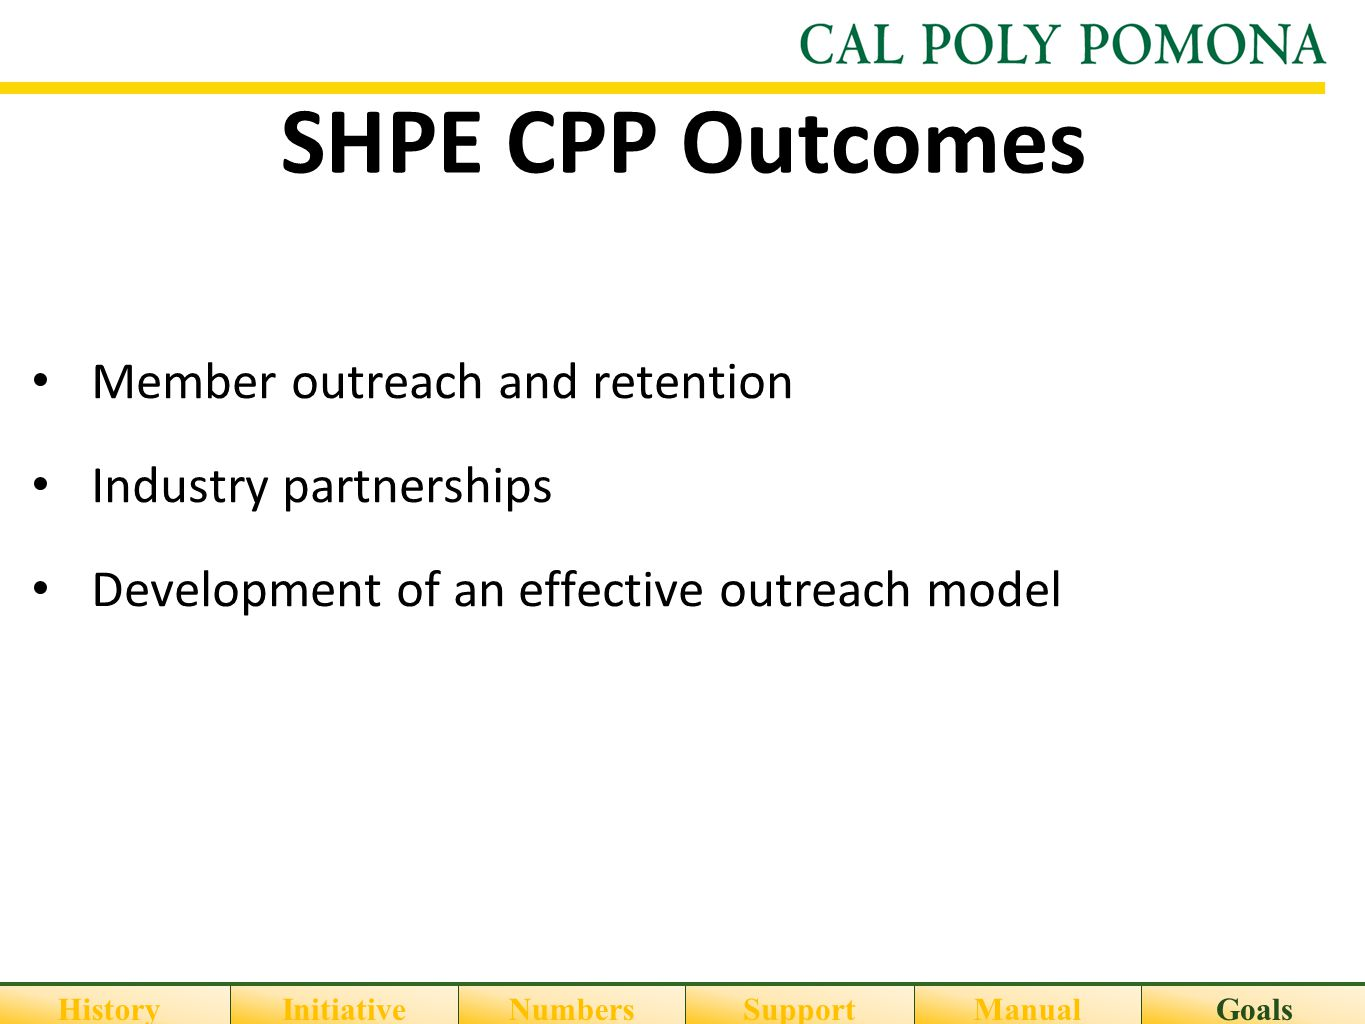 SHPE CPP Outcomes Member outreach and retention Industry partnerships Development of an effective outreach model HistoryInitiativeNumbersSupportGoalsM